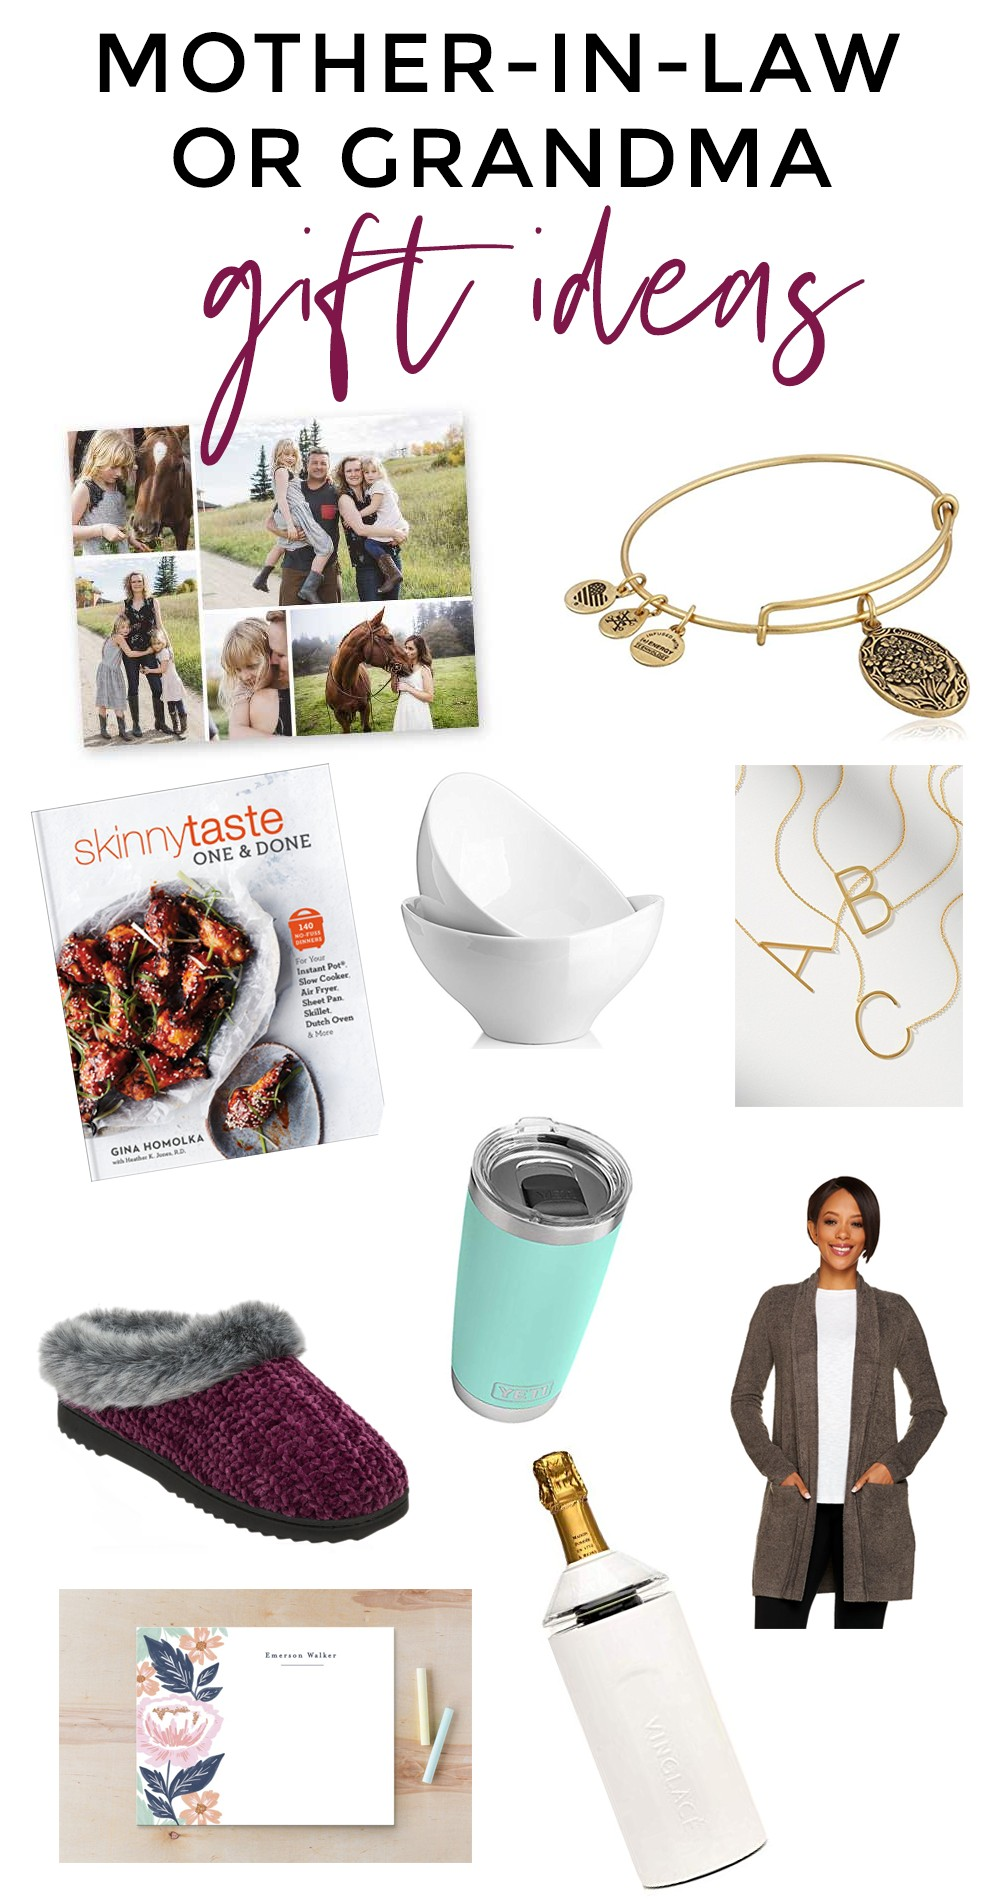 Gift Guide for the Grandma or Mother-in-Law | Meg O  on the Go